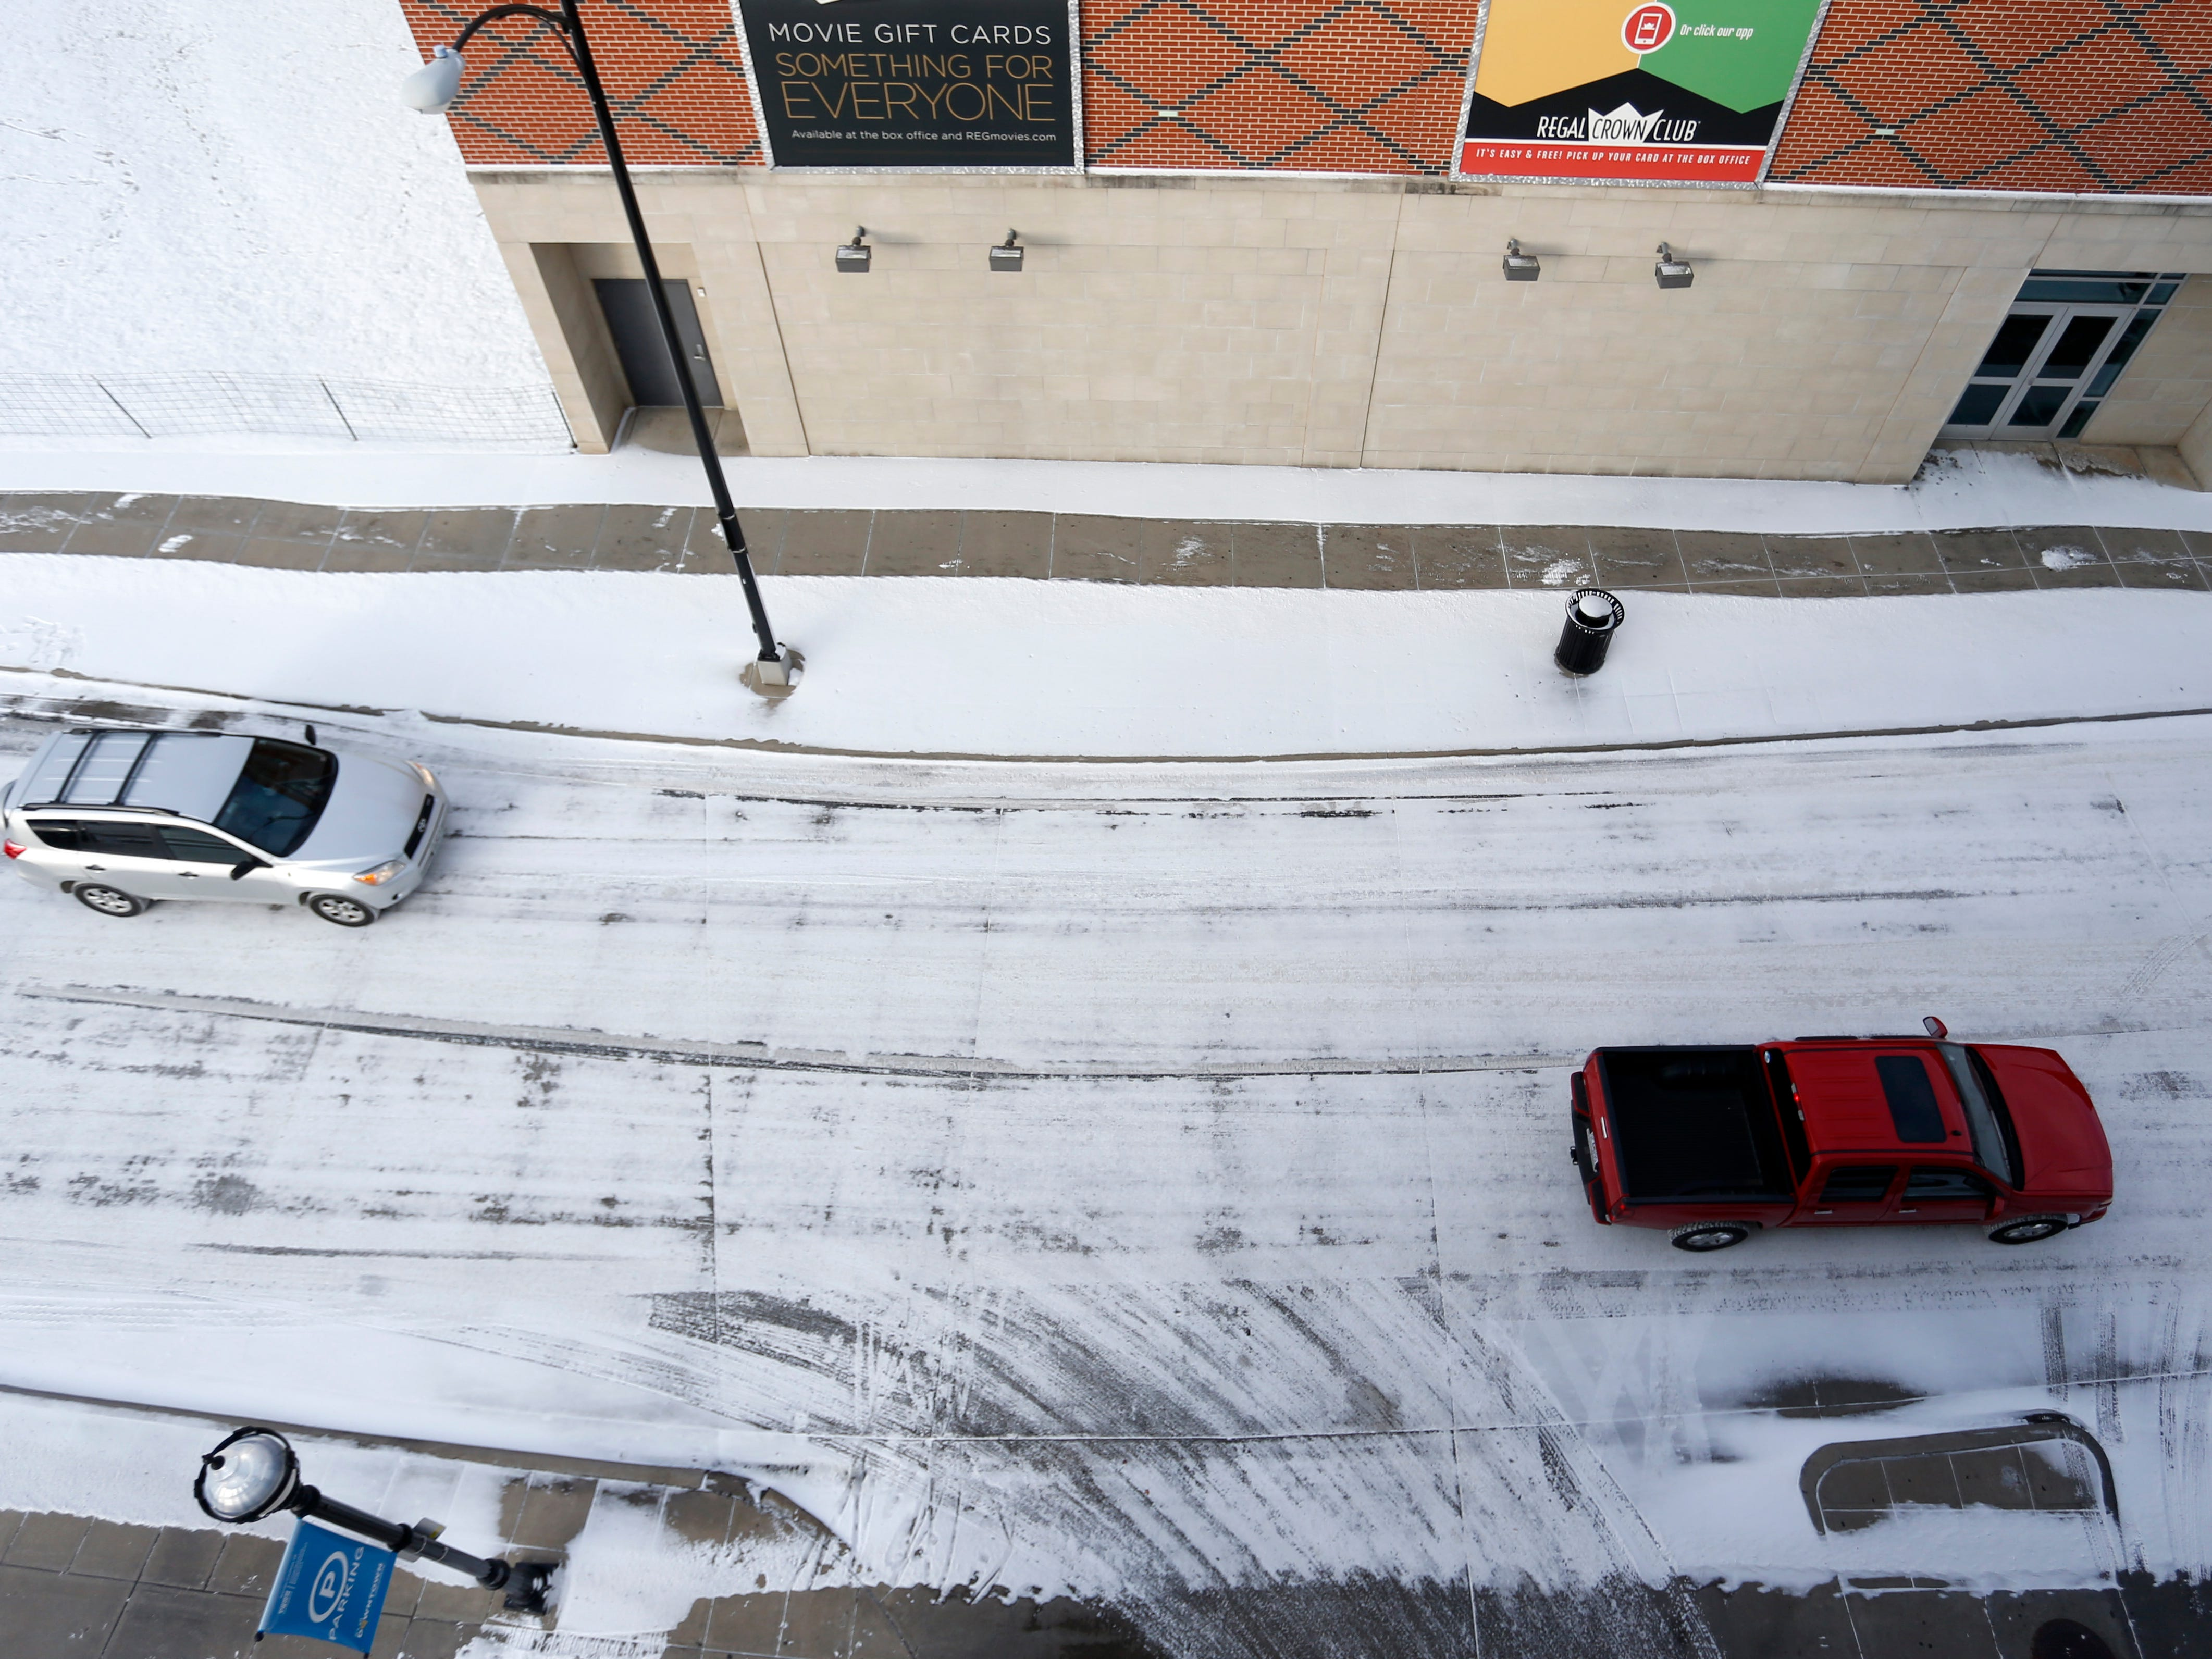 Snow blanketed the roads in downtown Springfield on Wednesday morning, January 30, 2019.